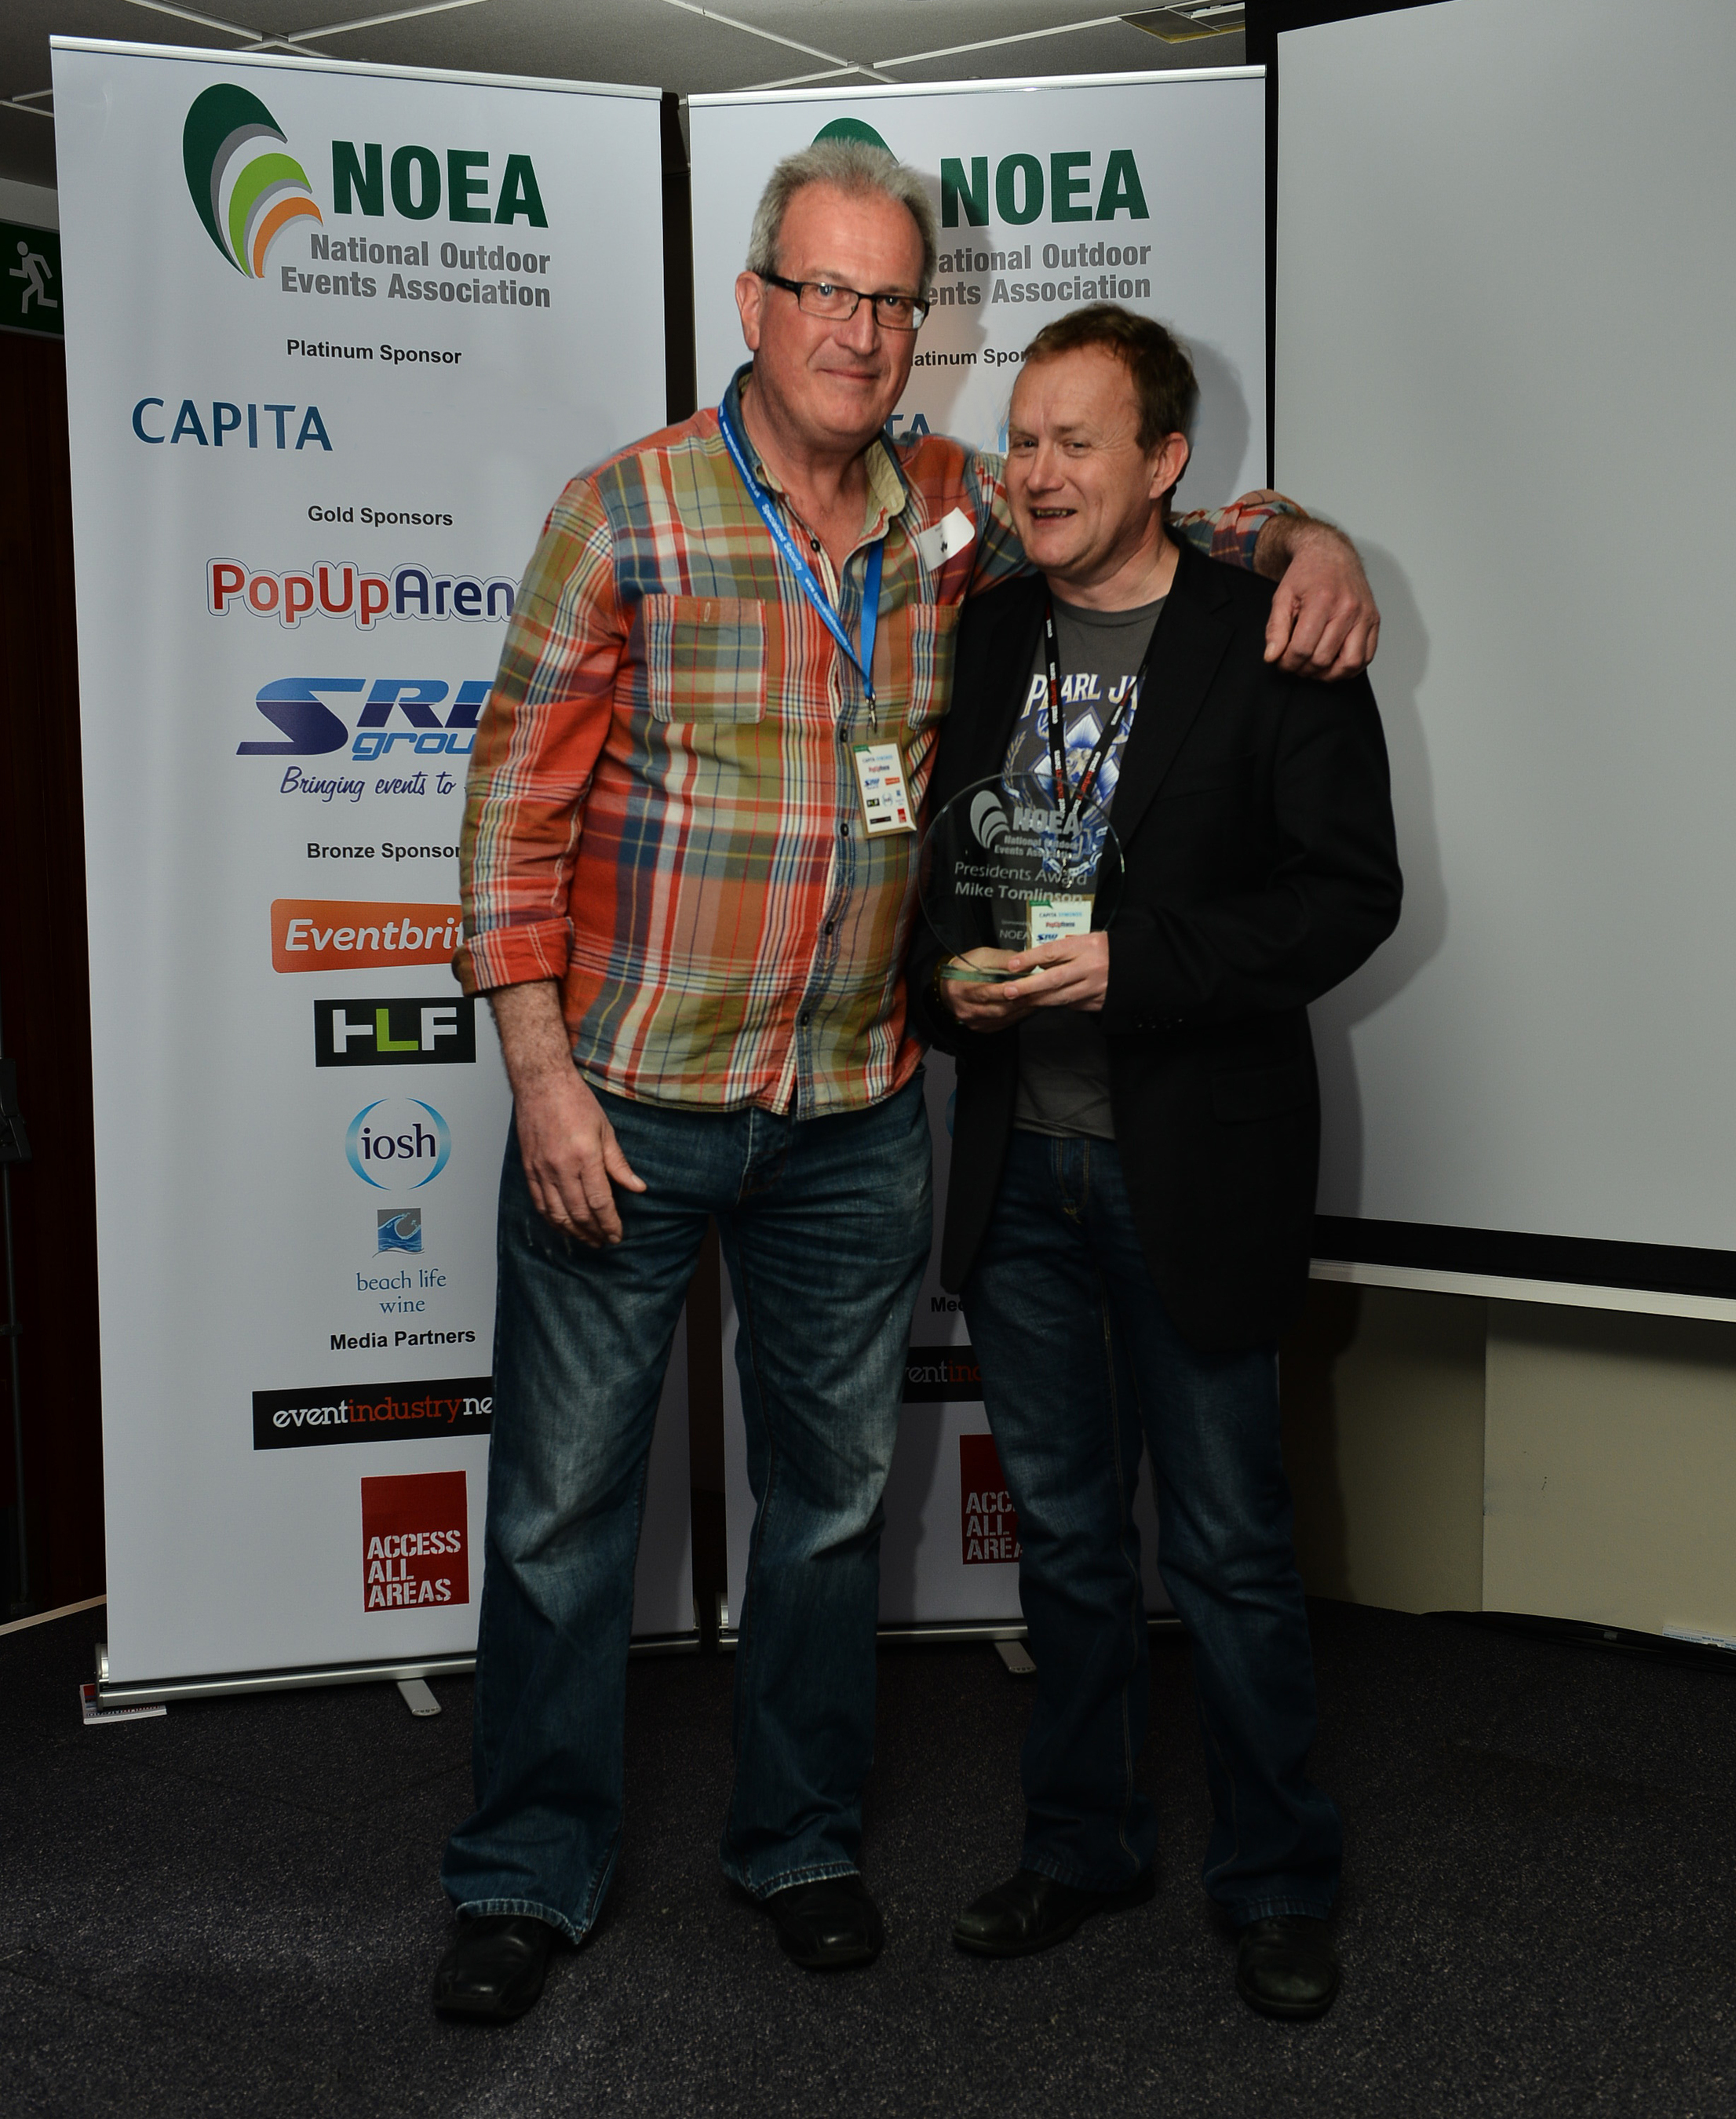 NOEA President Richard Limb presenting the Presidentâeuro(TM)s Award to Mike Tomlinson for outstanding achievement and contribution to the events industry at last yearâeuro(TM)s awards. (PRNewsFoto/NOEA)